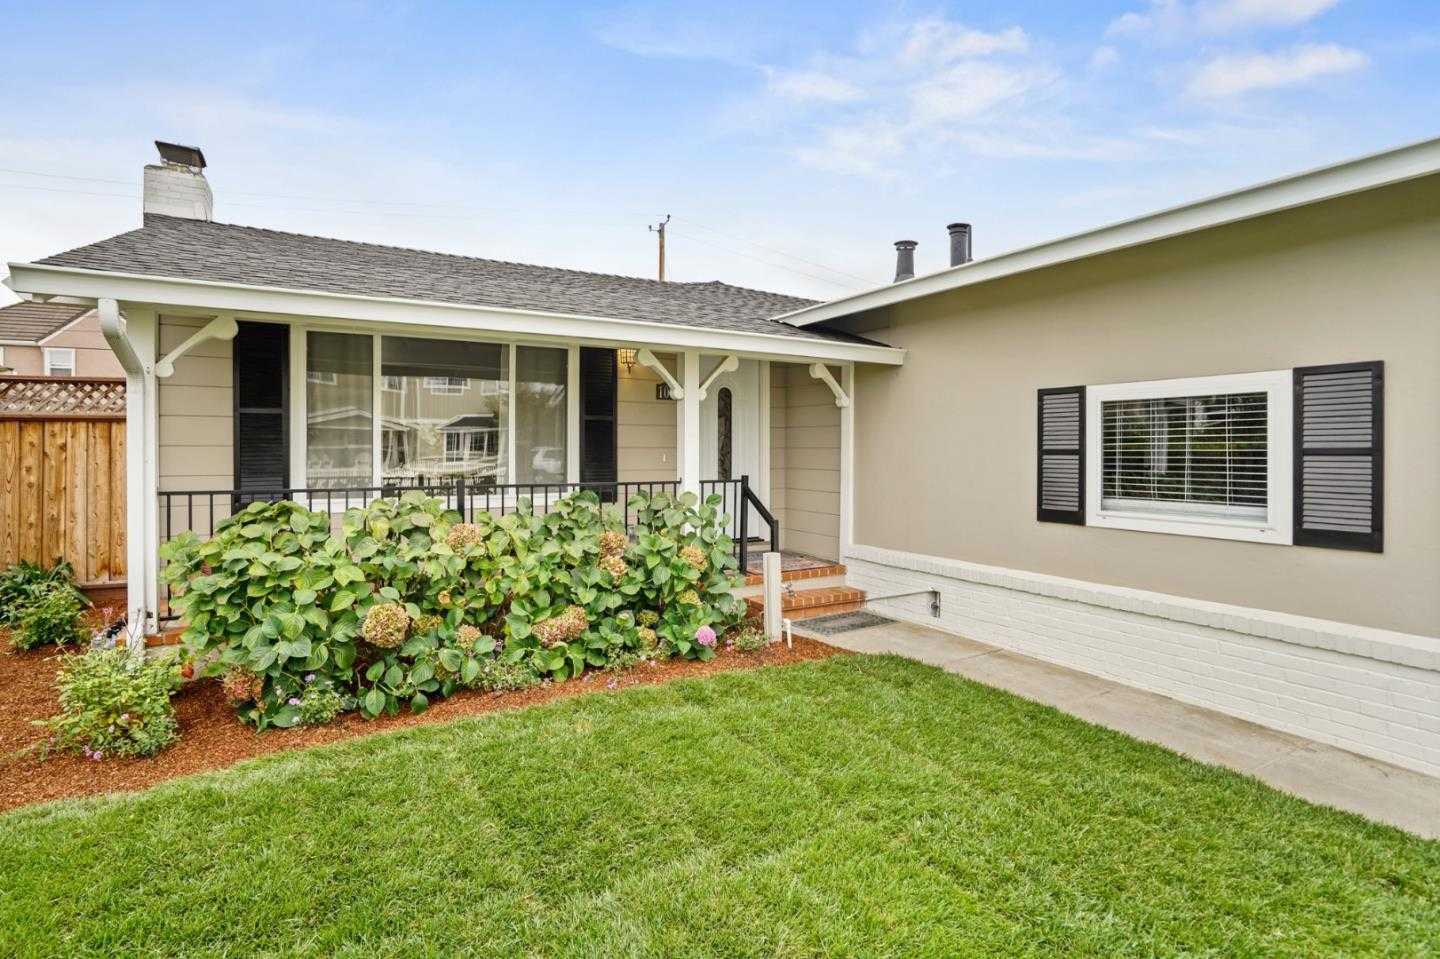 $1,564,000 - 4Br/2Ba -  for Sale in San Mateo